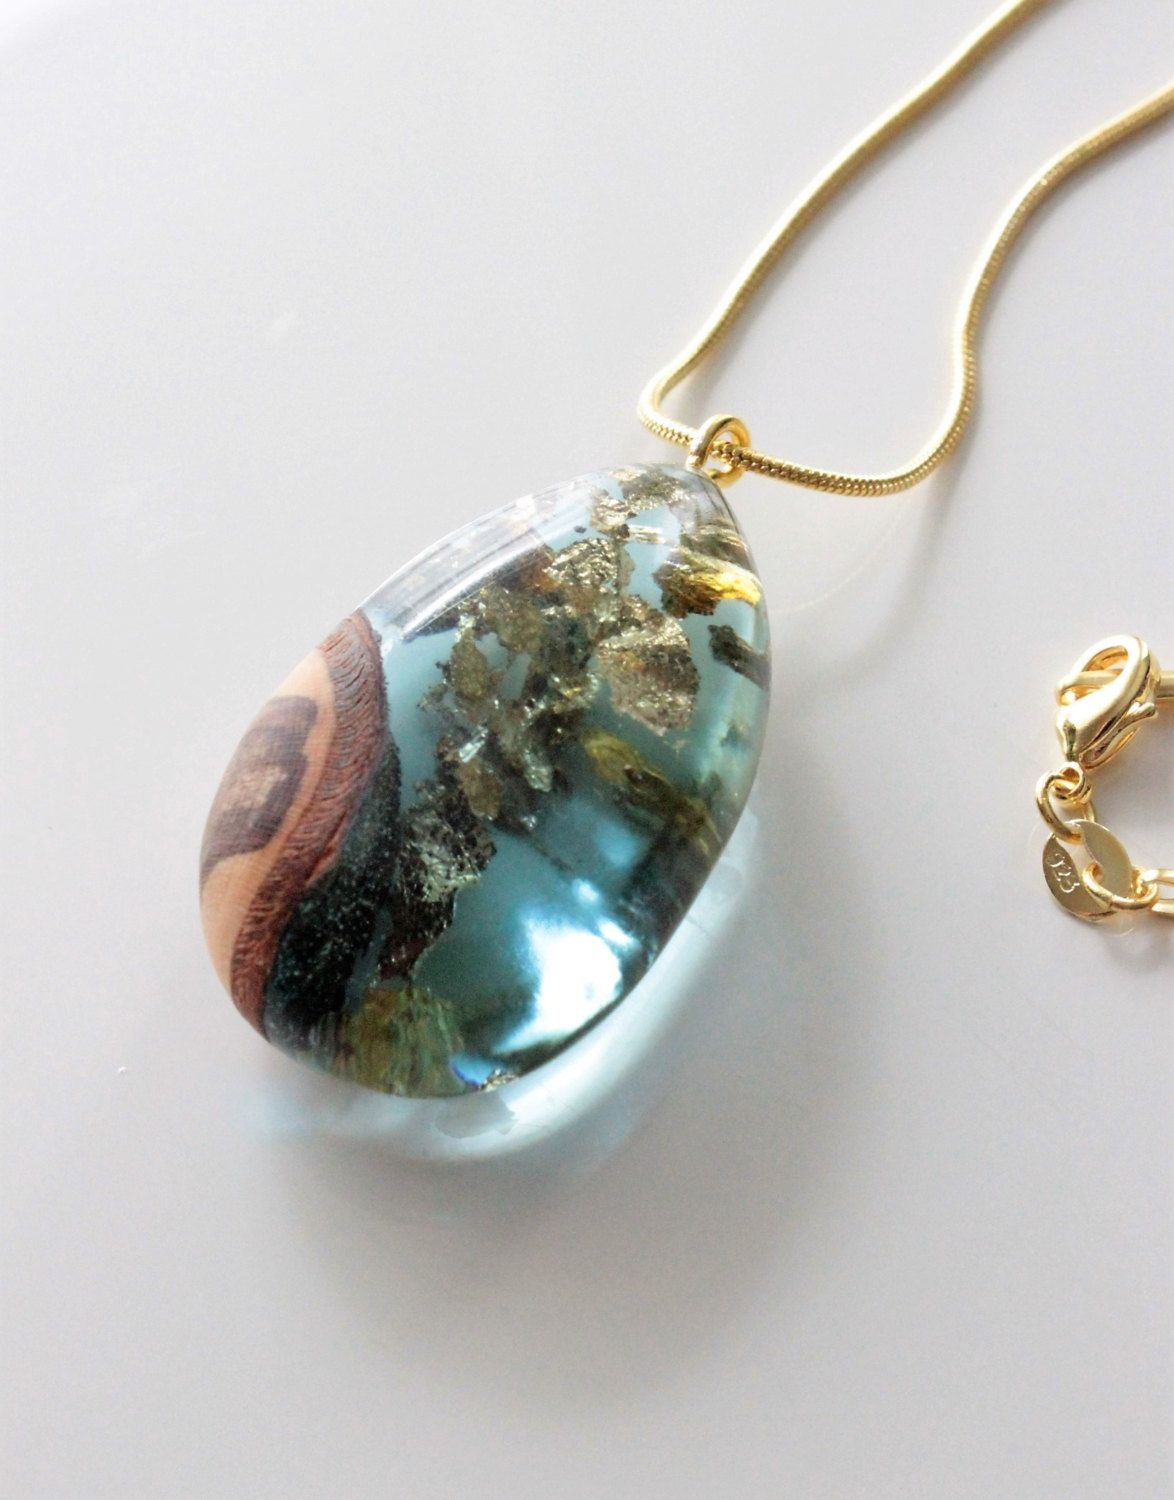 Gold necklace with wood-resin pendant - handmade pendant ...